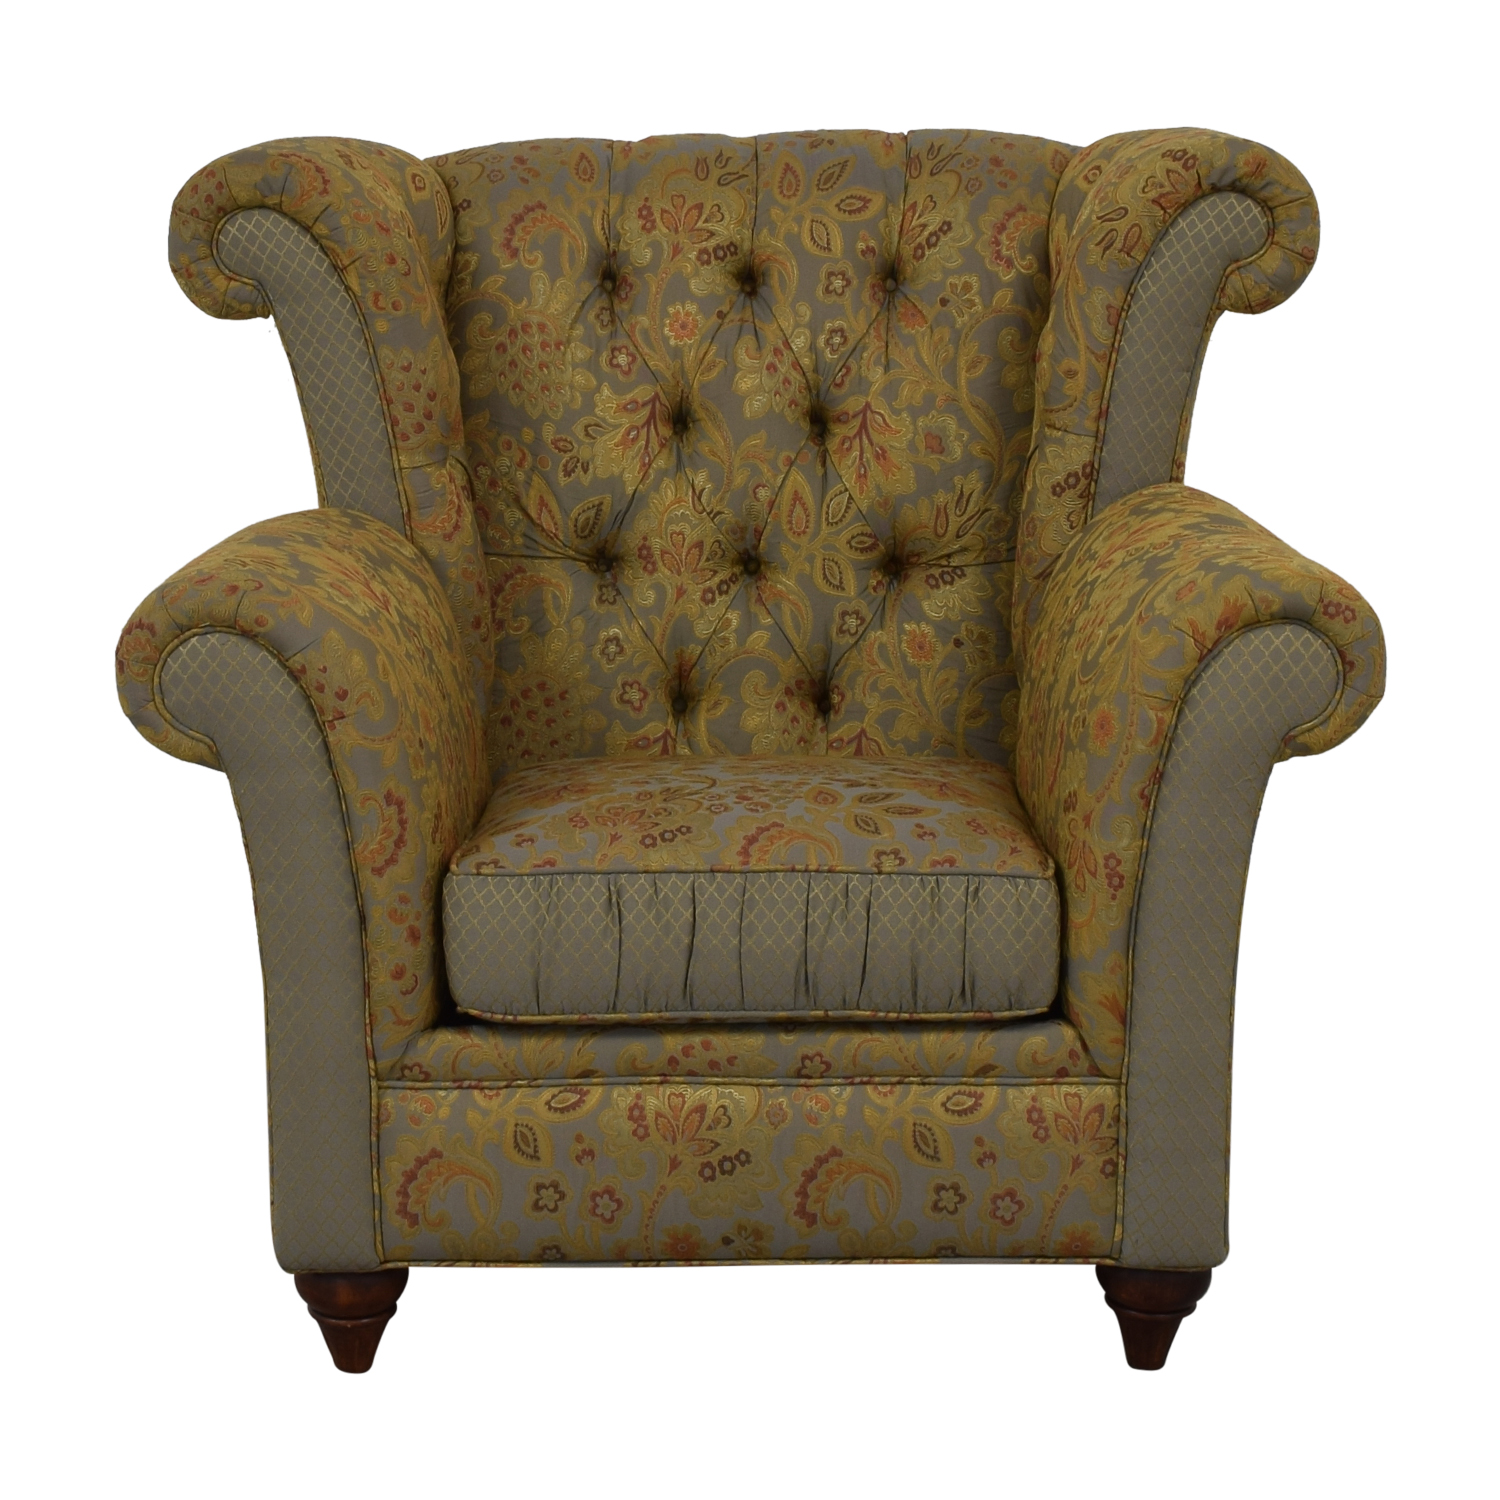 Safavieh Accent Chair / Chairs